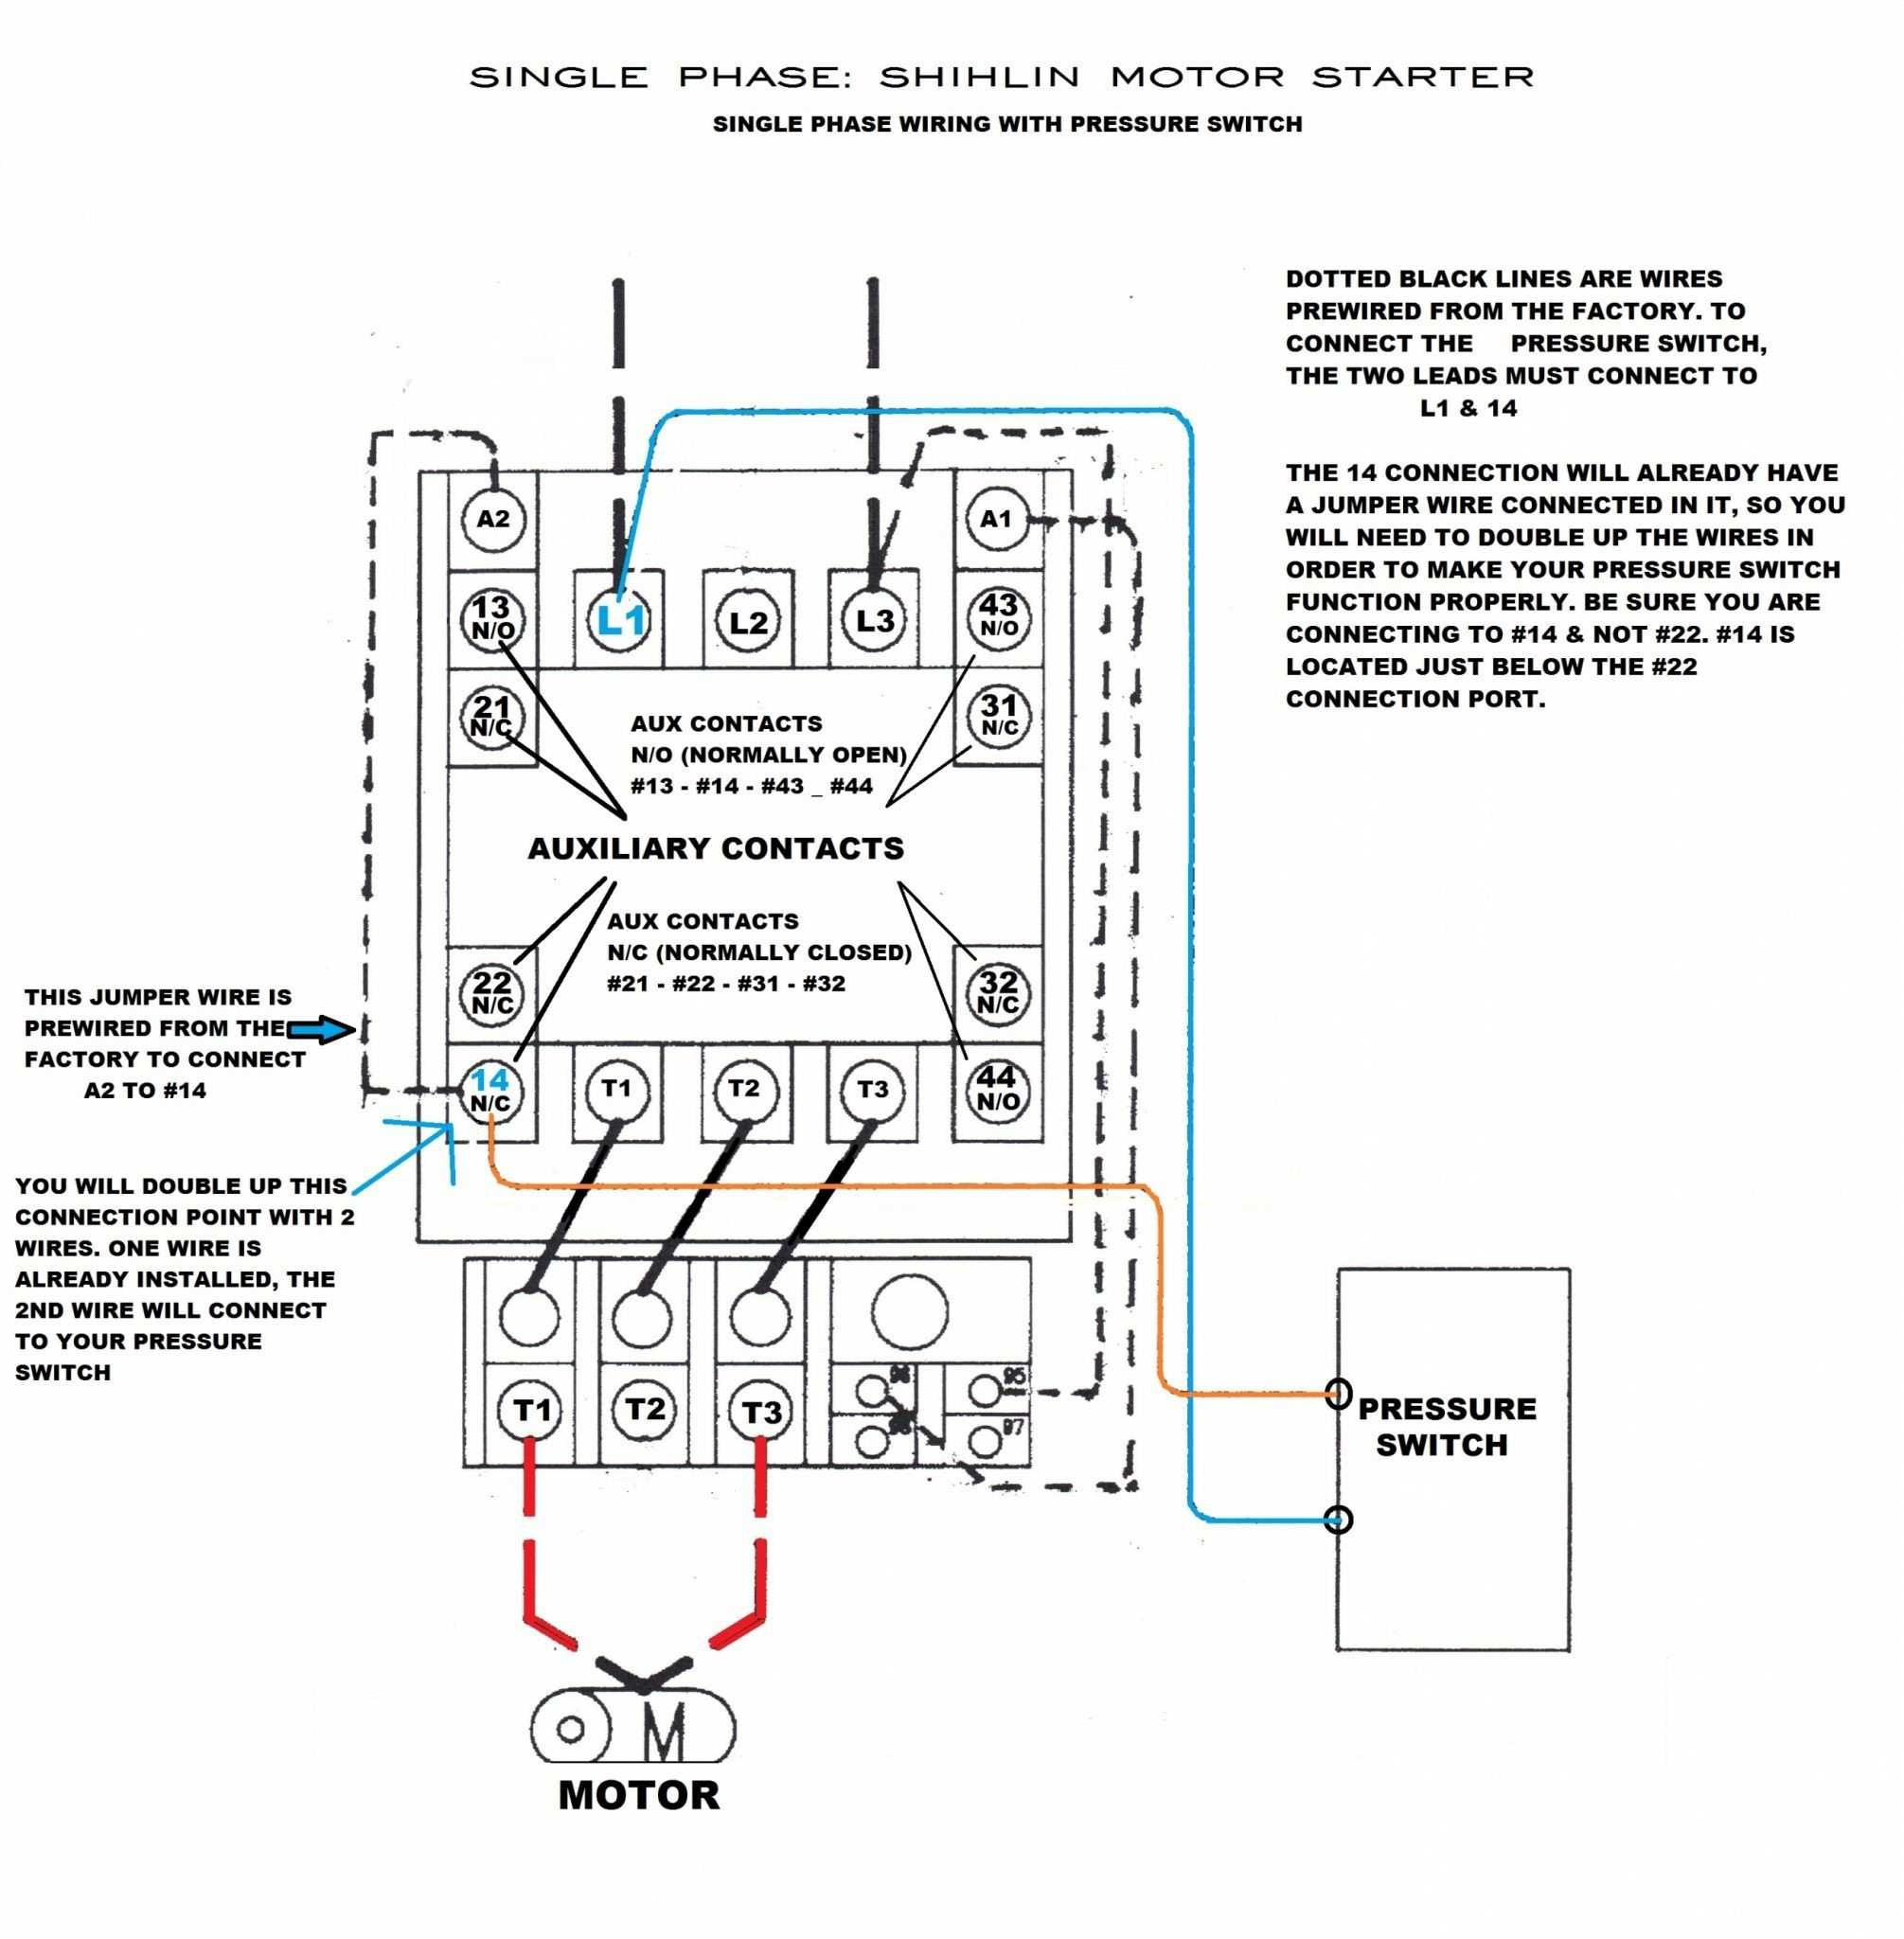 Square D Pressure Switch Wiring Diagram Best Wiring Diagram for Pressure Switch Of Square D Pressure Switch Wiring Diagram